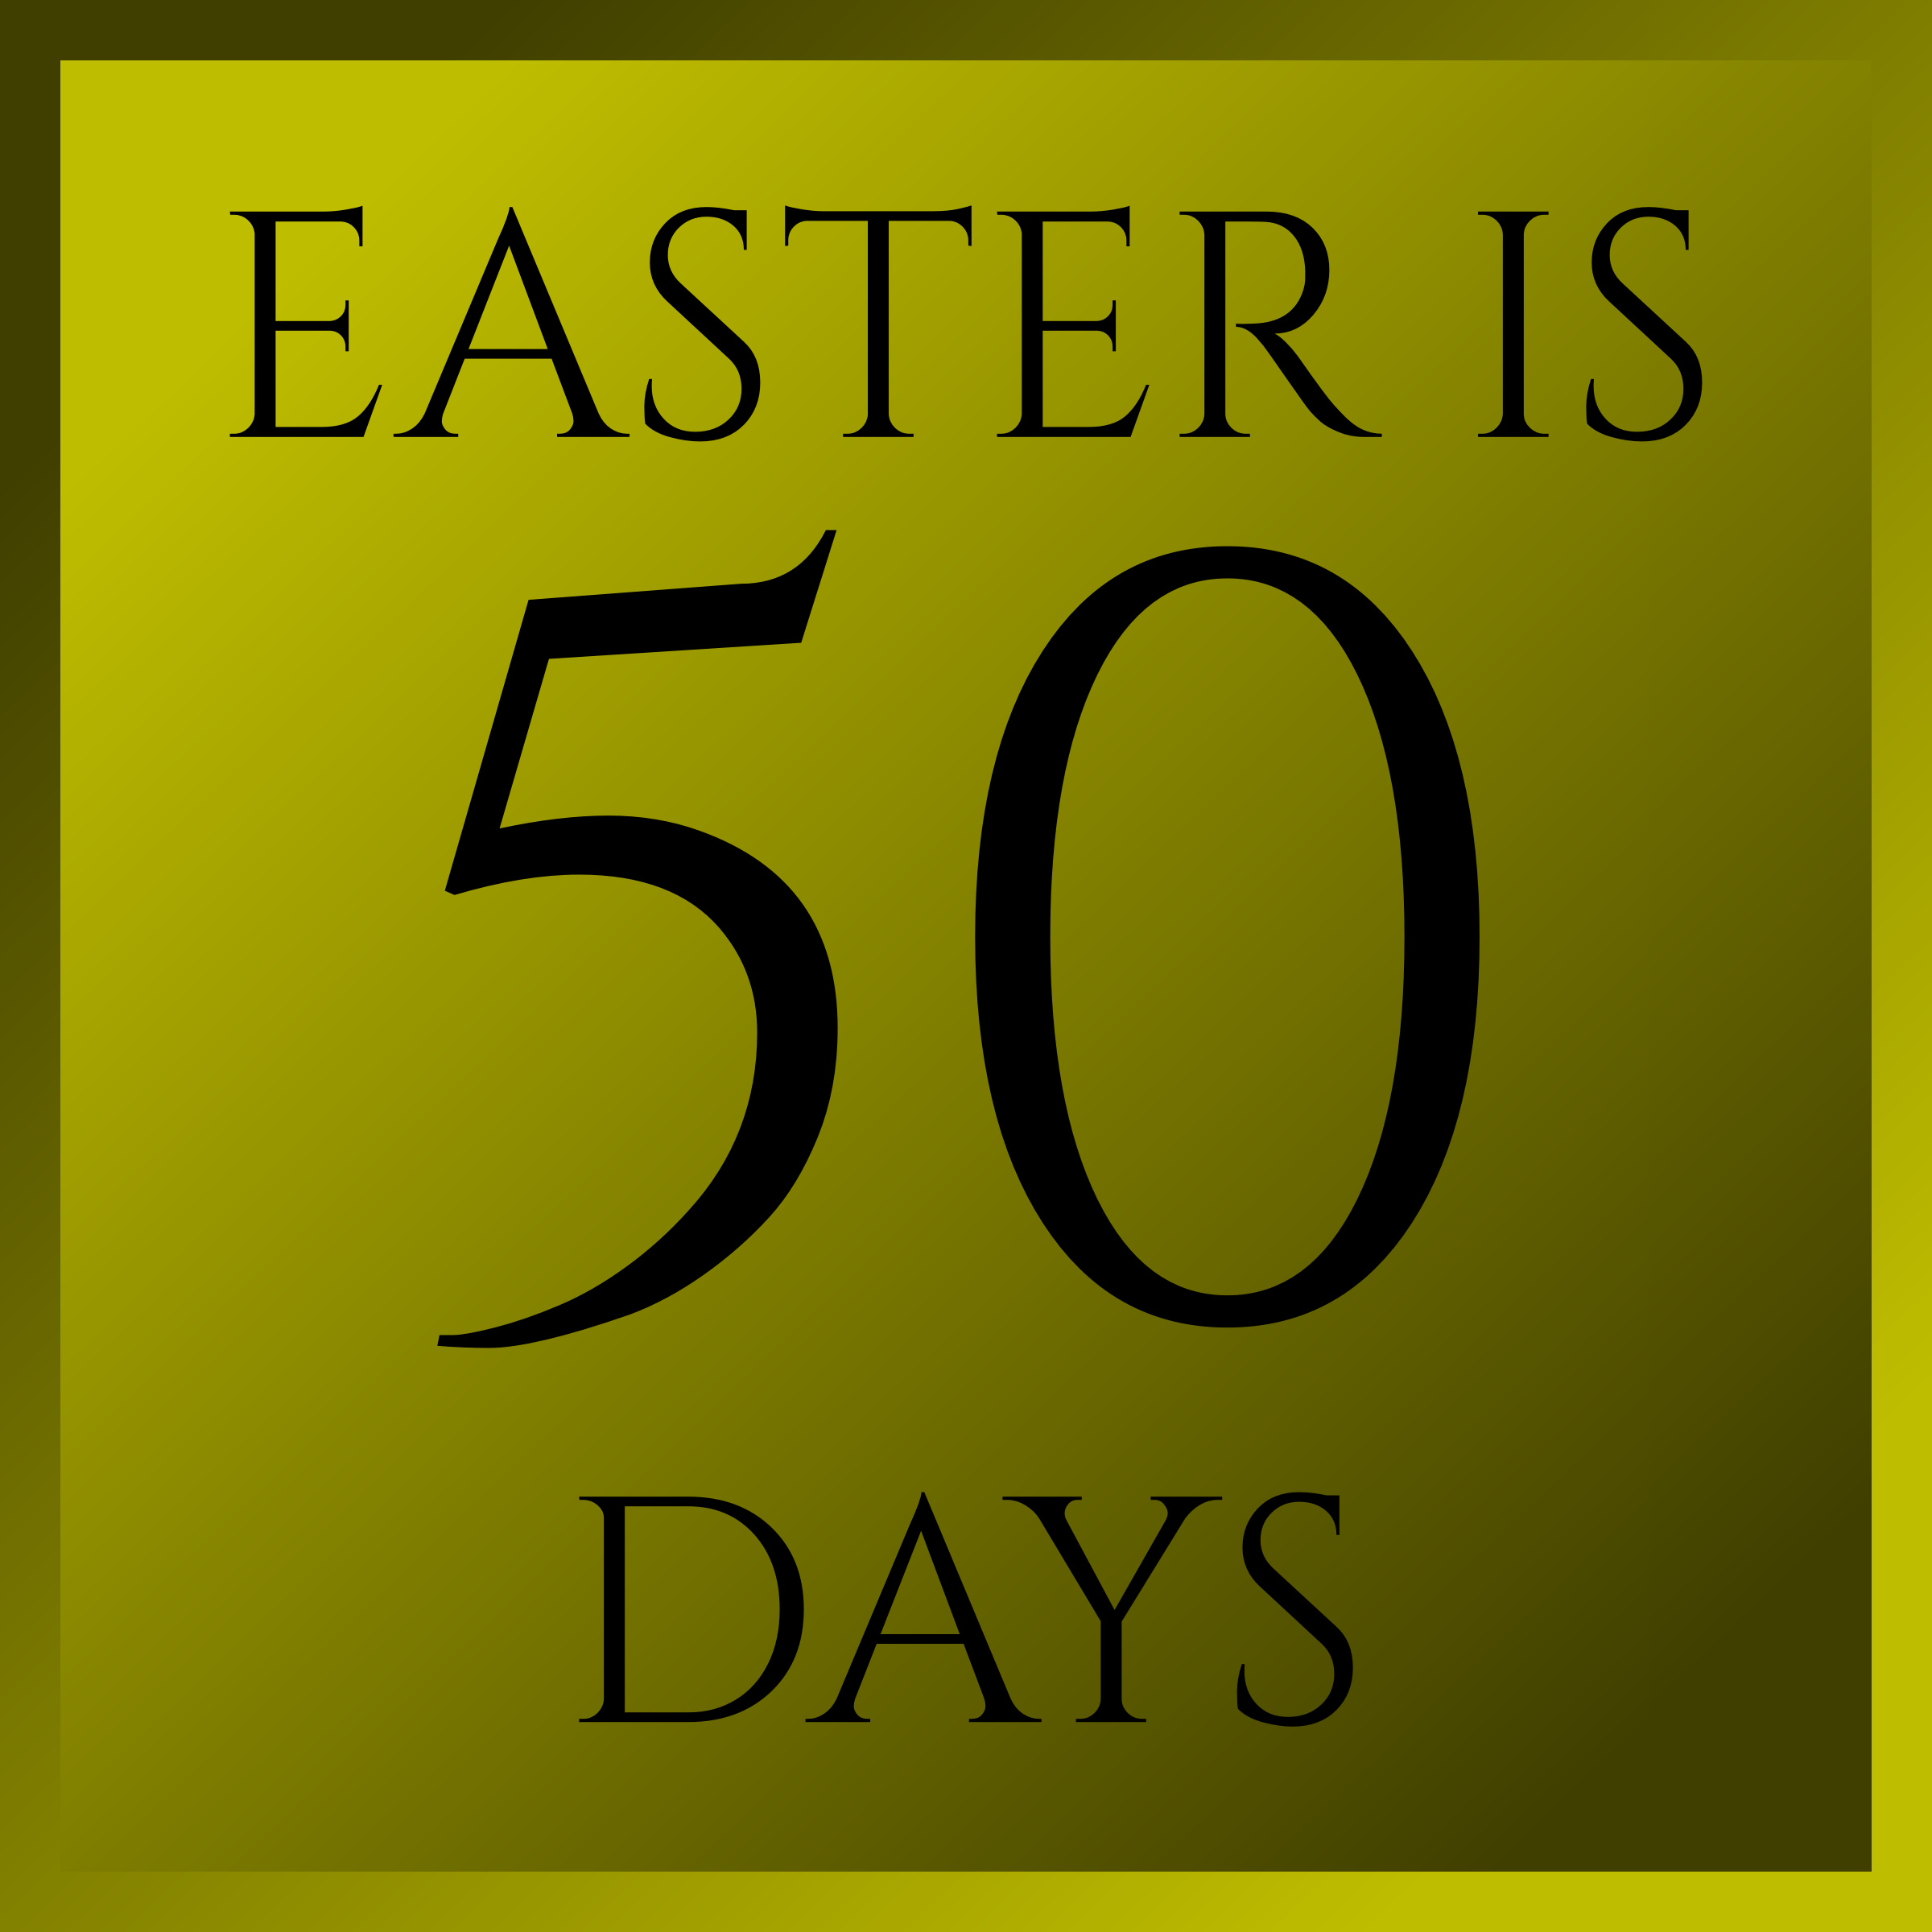 Easter Is 50 Days by PhilipBarrington